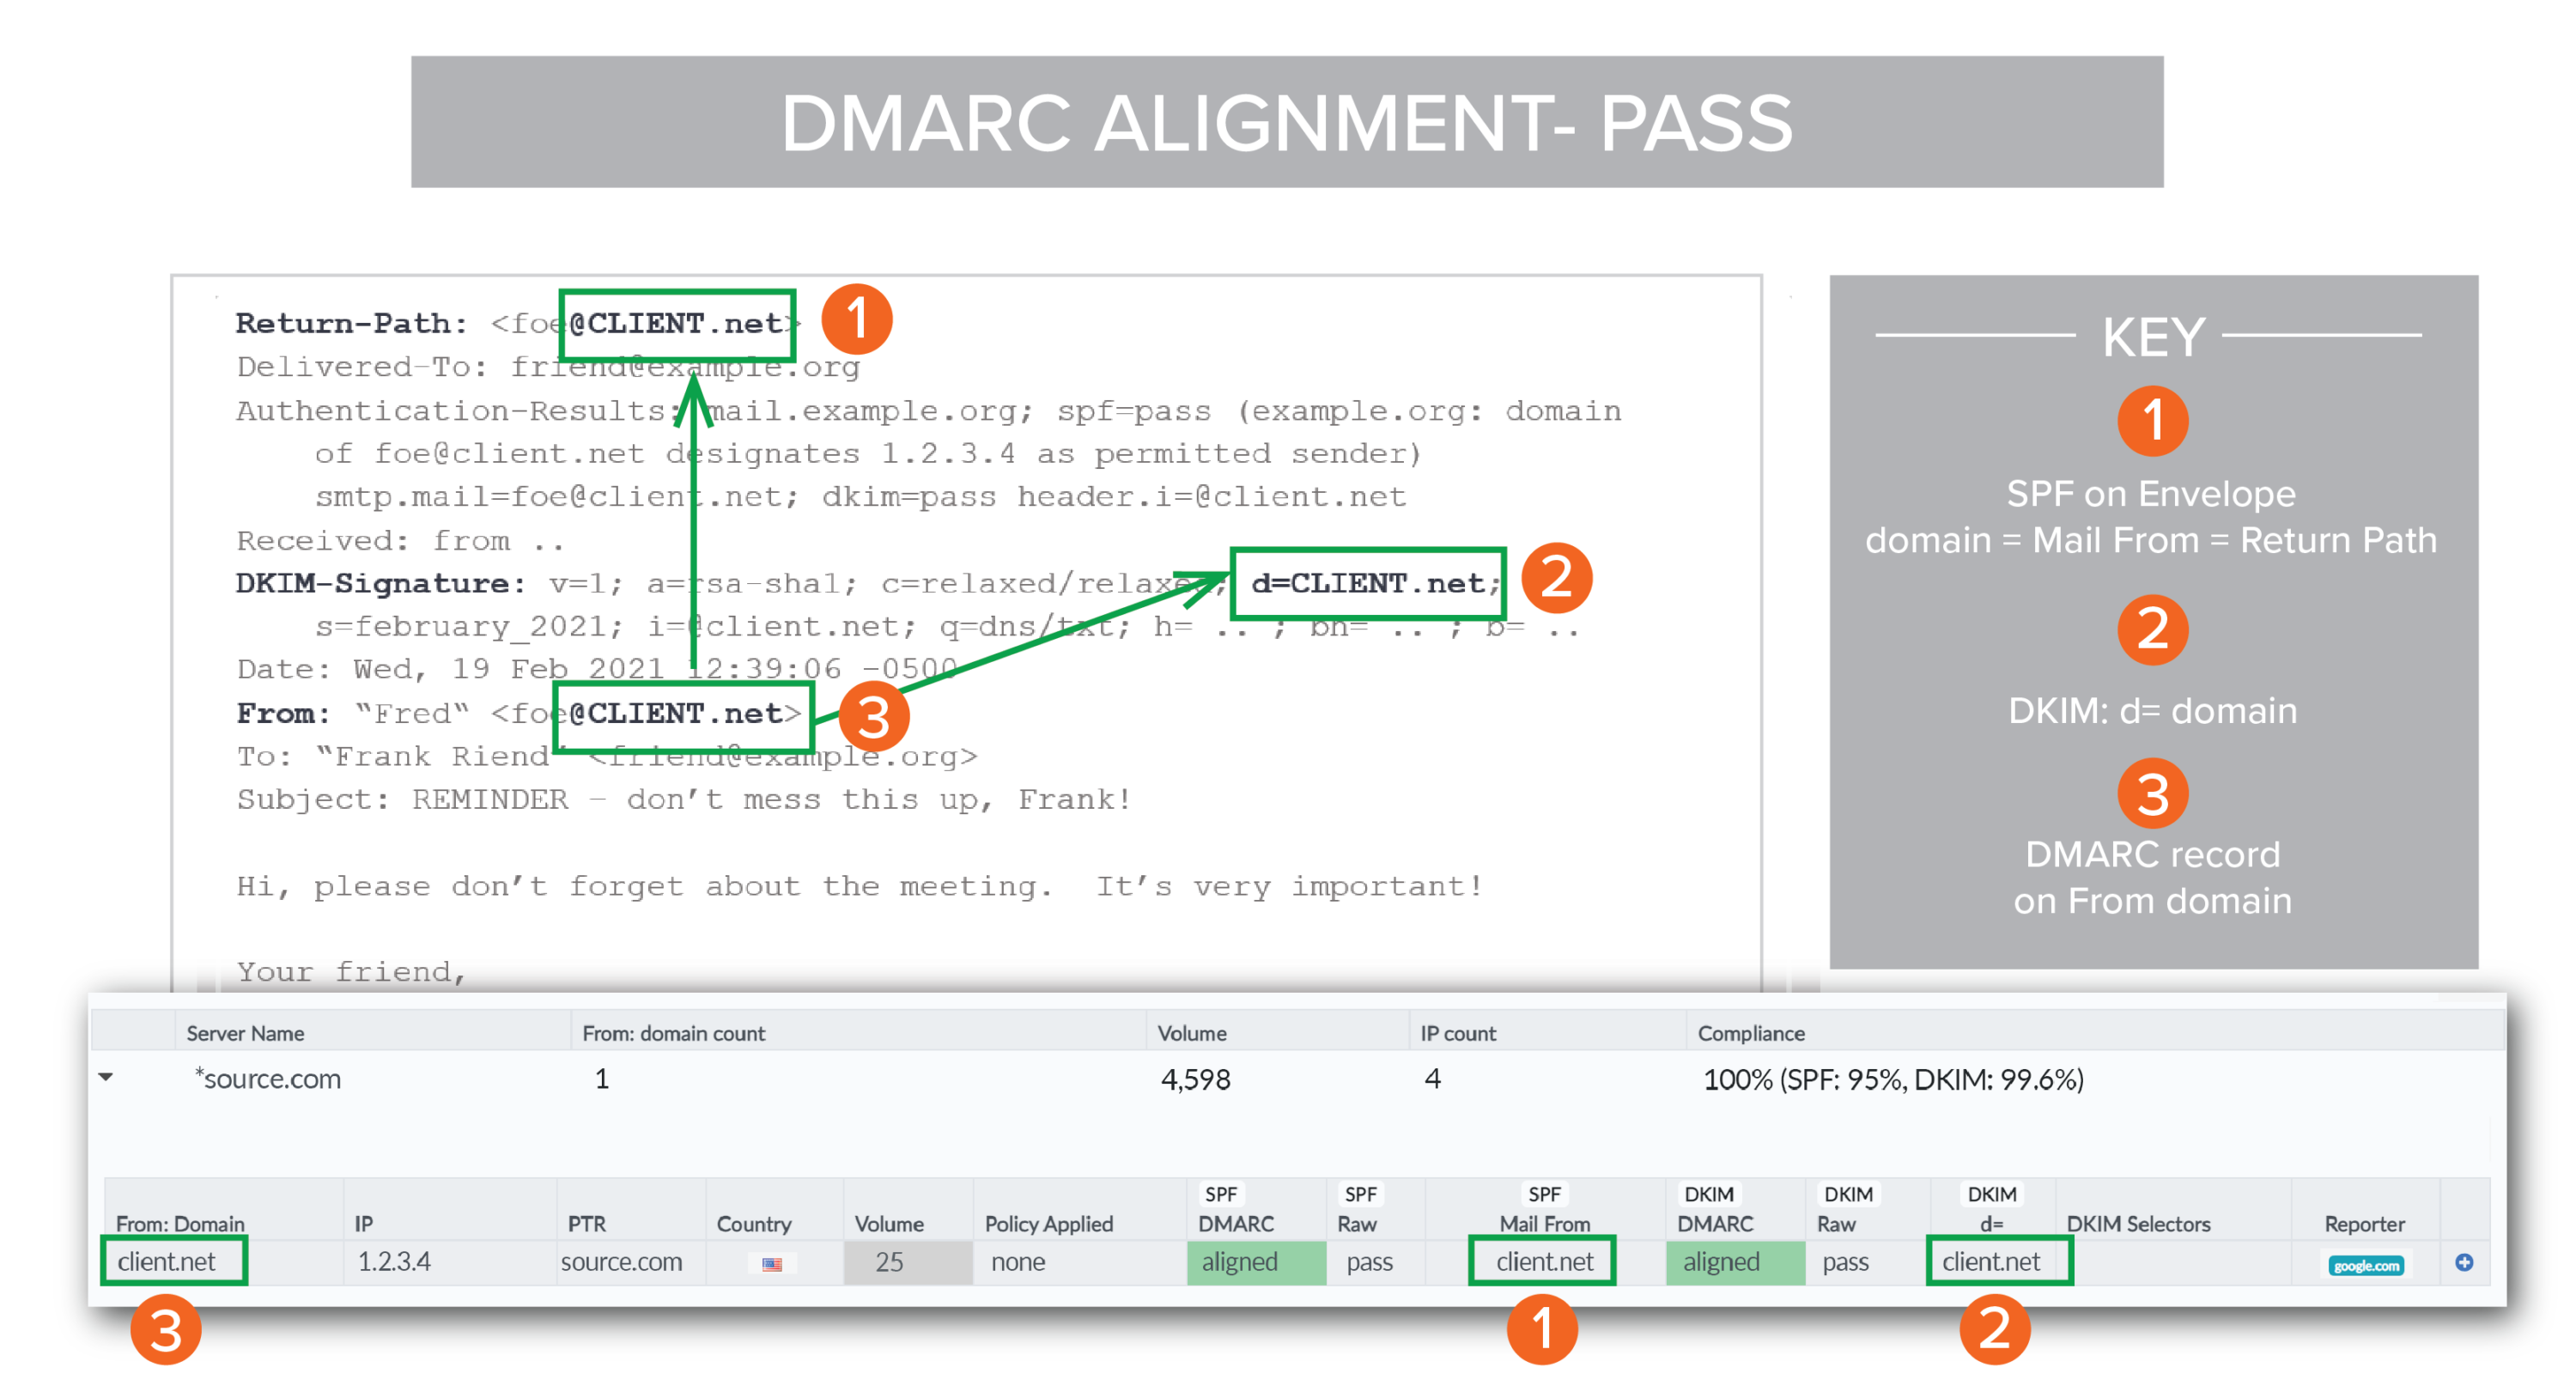 Chart of passing DMARC alignment